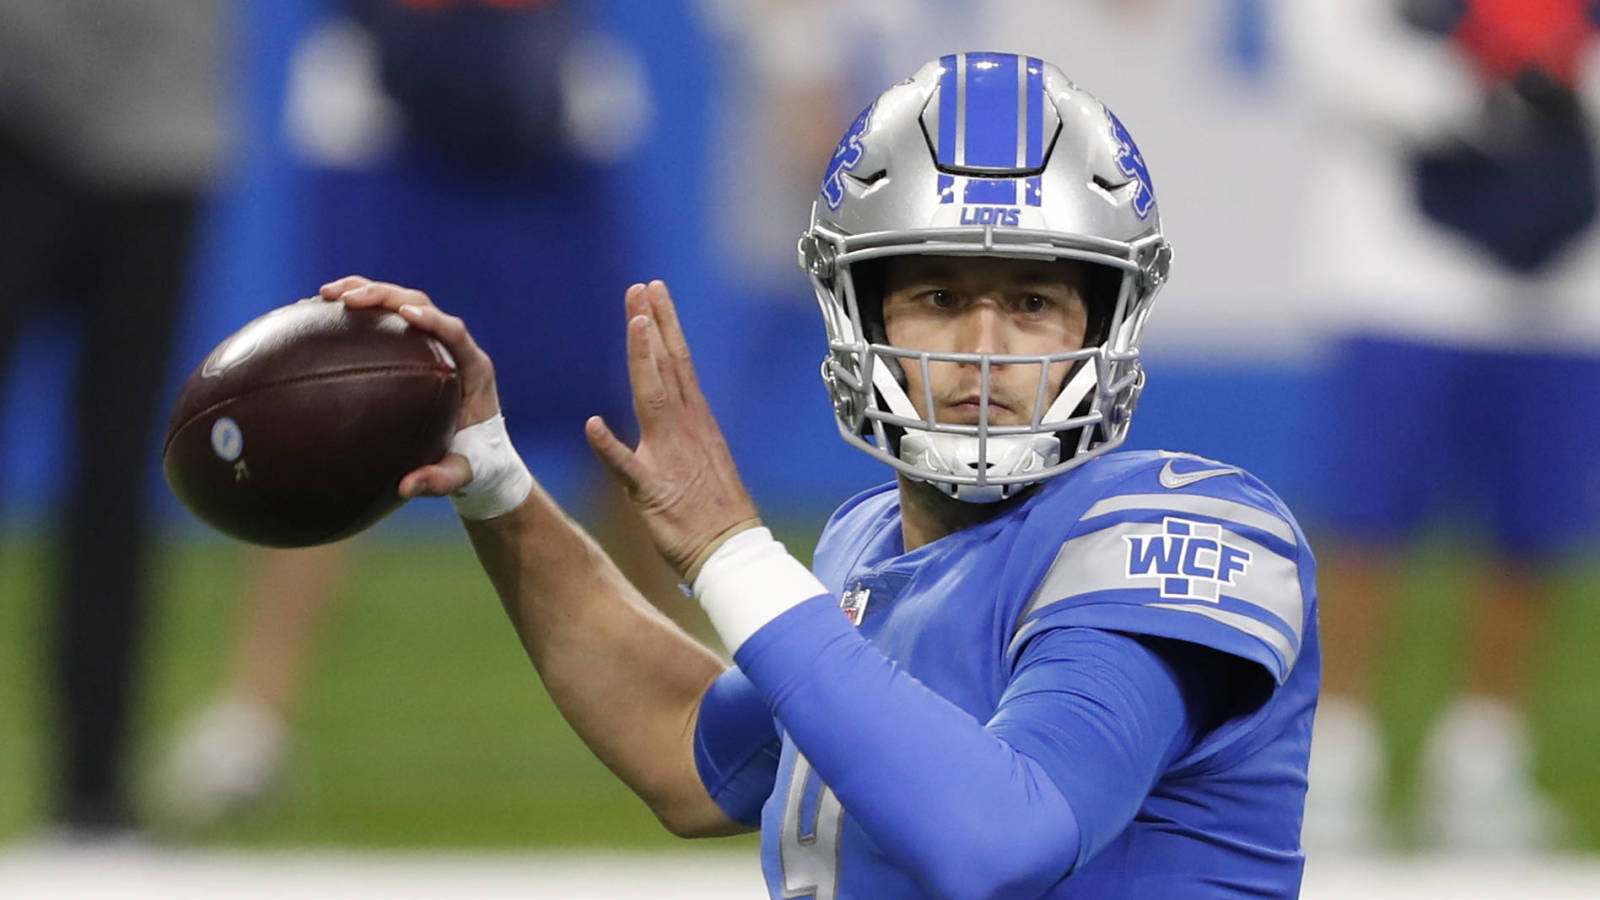 Stafford reportedly would have stayed with Lions had they made this move